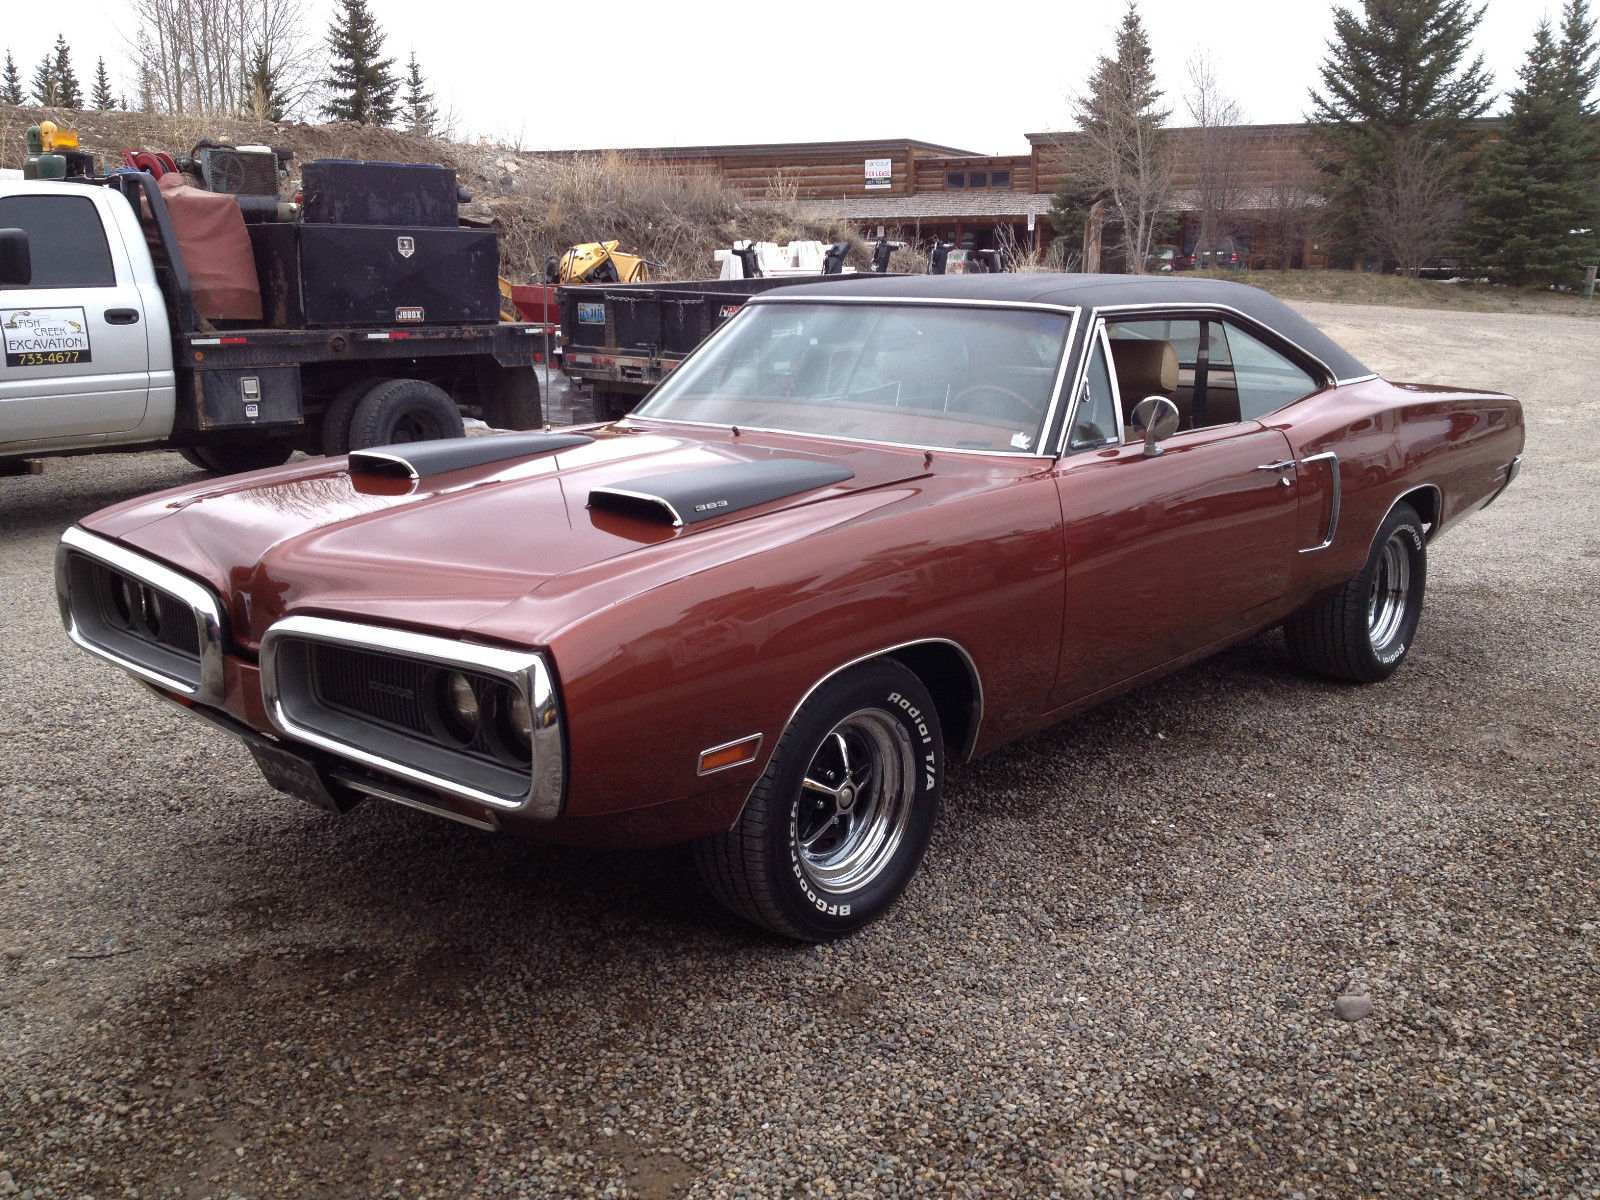 1970 Dodge Coronet 440 Hardtop 2-Door 440 engine-1w22232